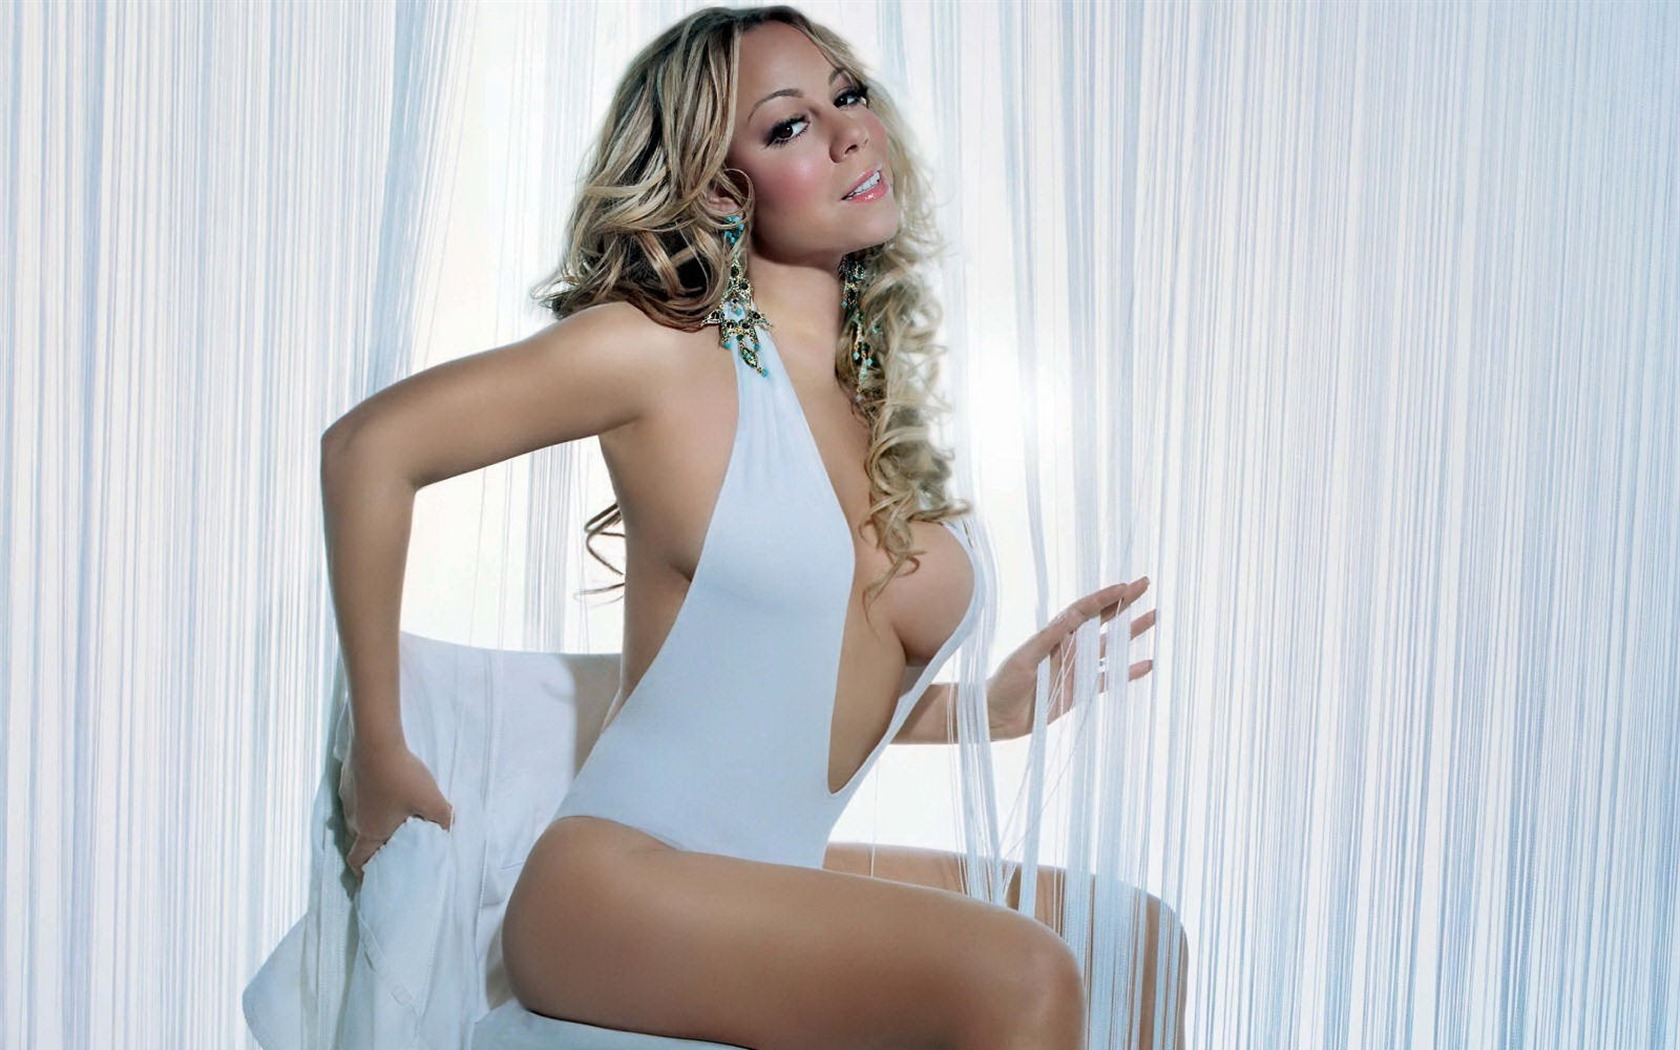 Mariah Carey #037 - 1680x1050 Wallpapers Pictures Photos Images